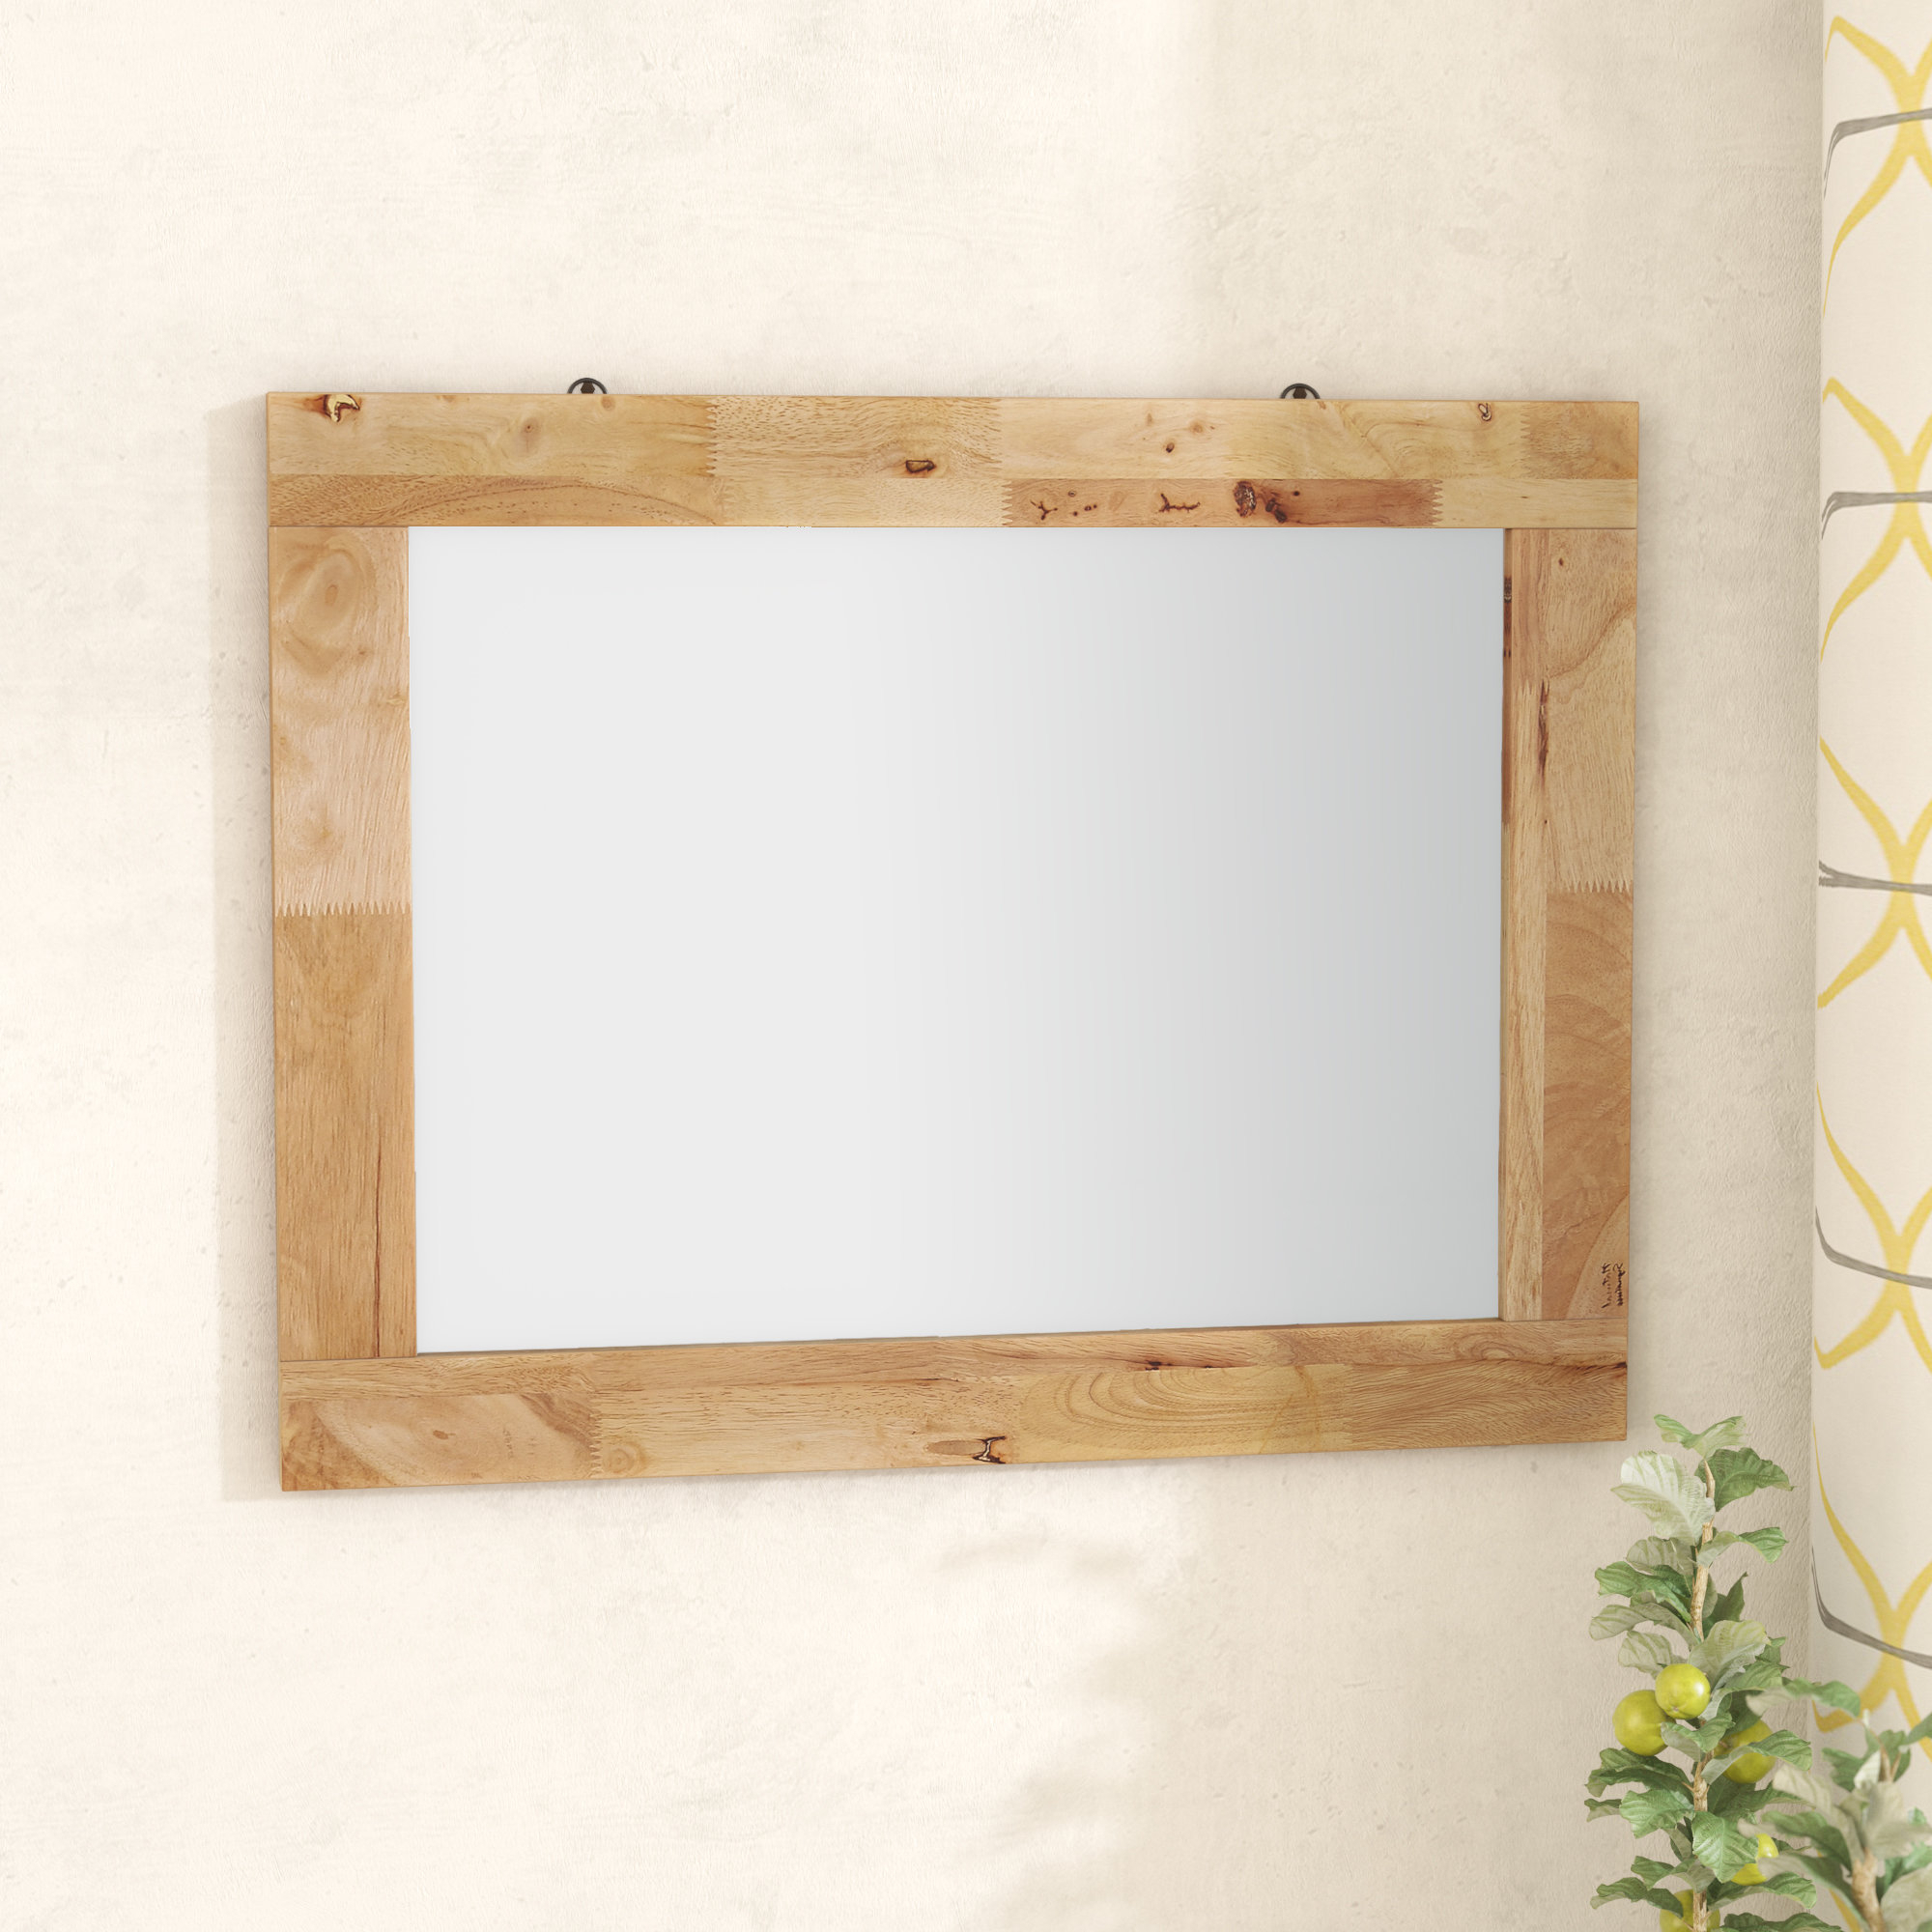 Best And Newest Longwood Rustic Beveled Accent Mirrors Within Barney Rustic Accent Wall Mirror (View 8 of 20)